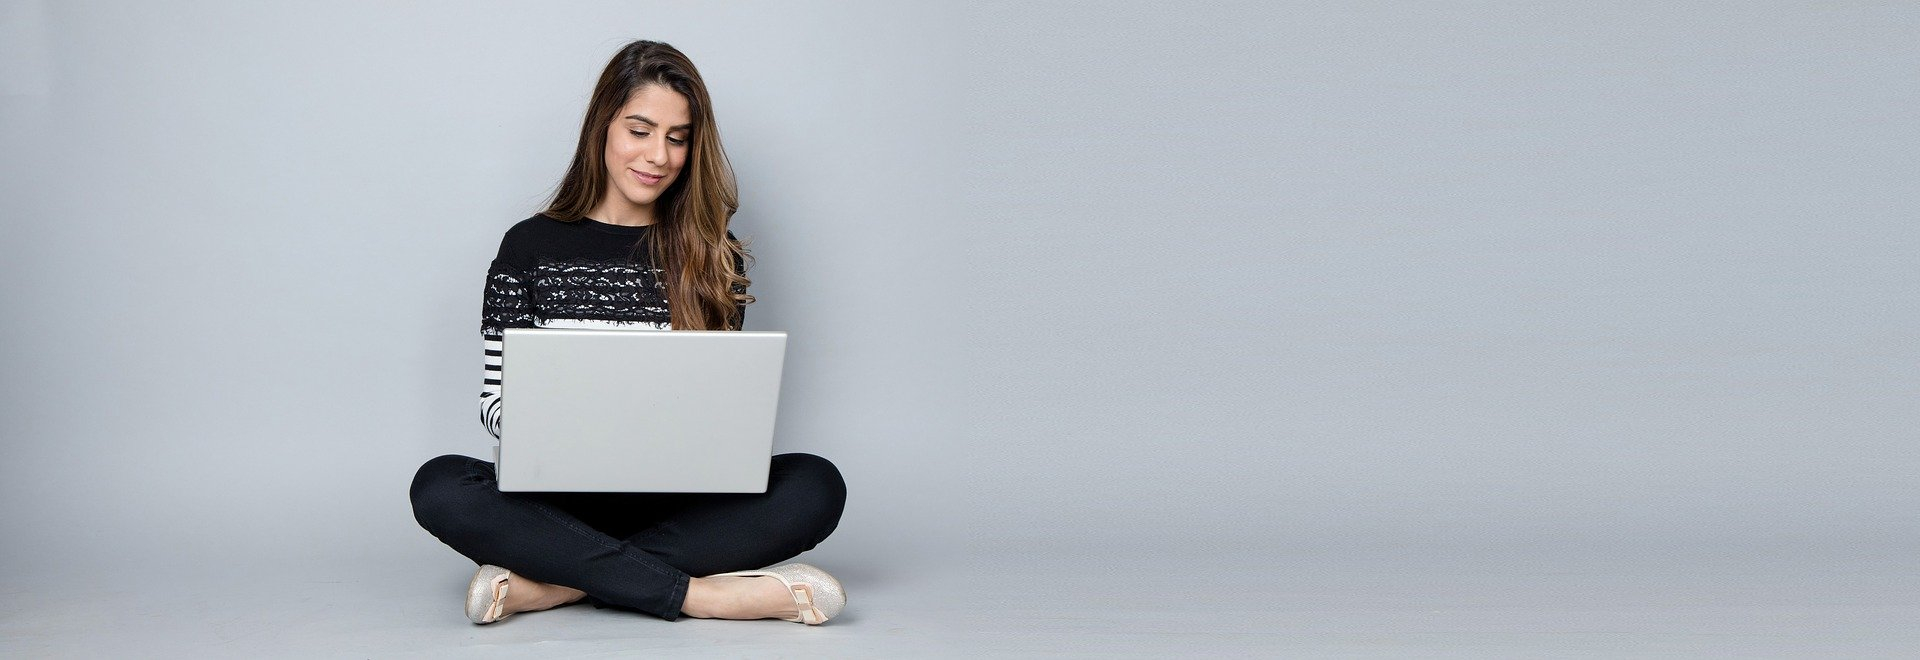 8 Reasons to Consider Starting an Online Career